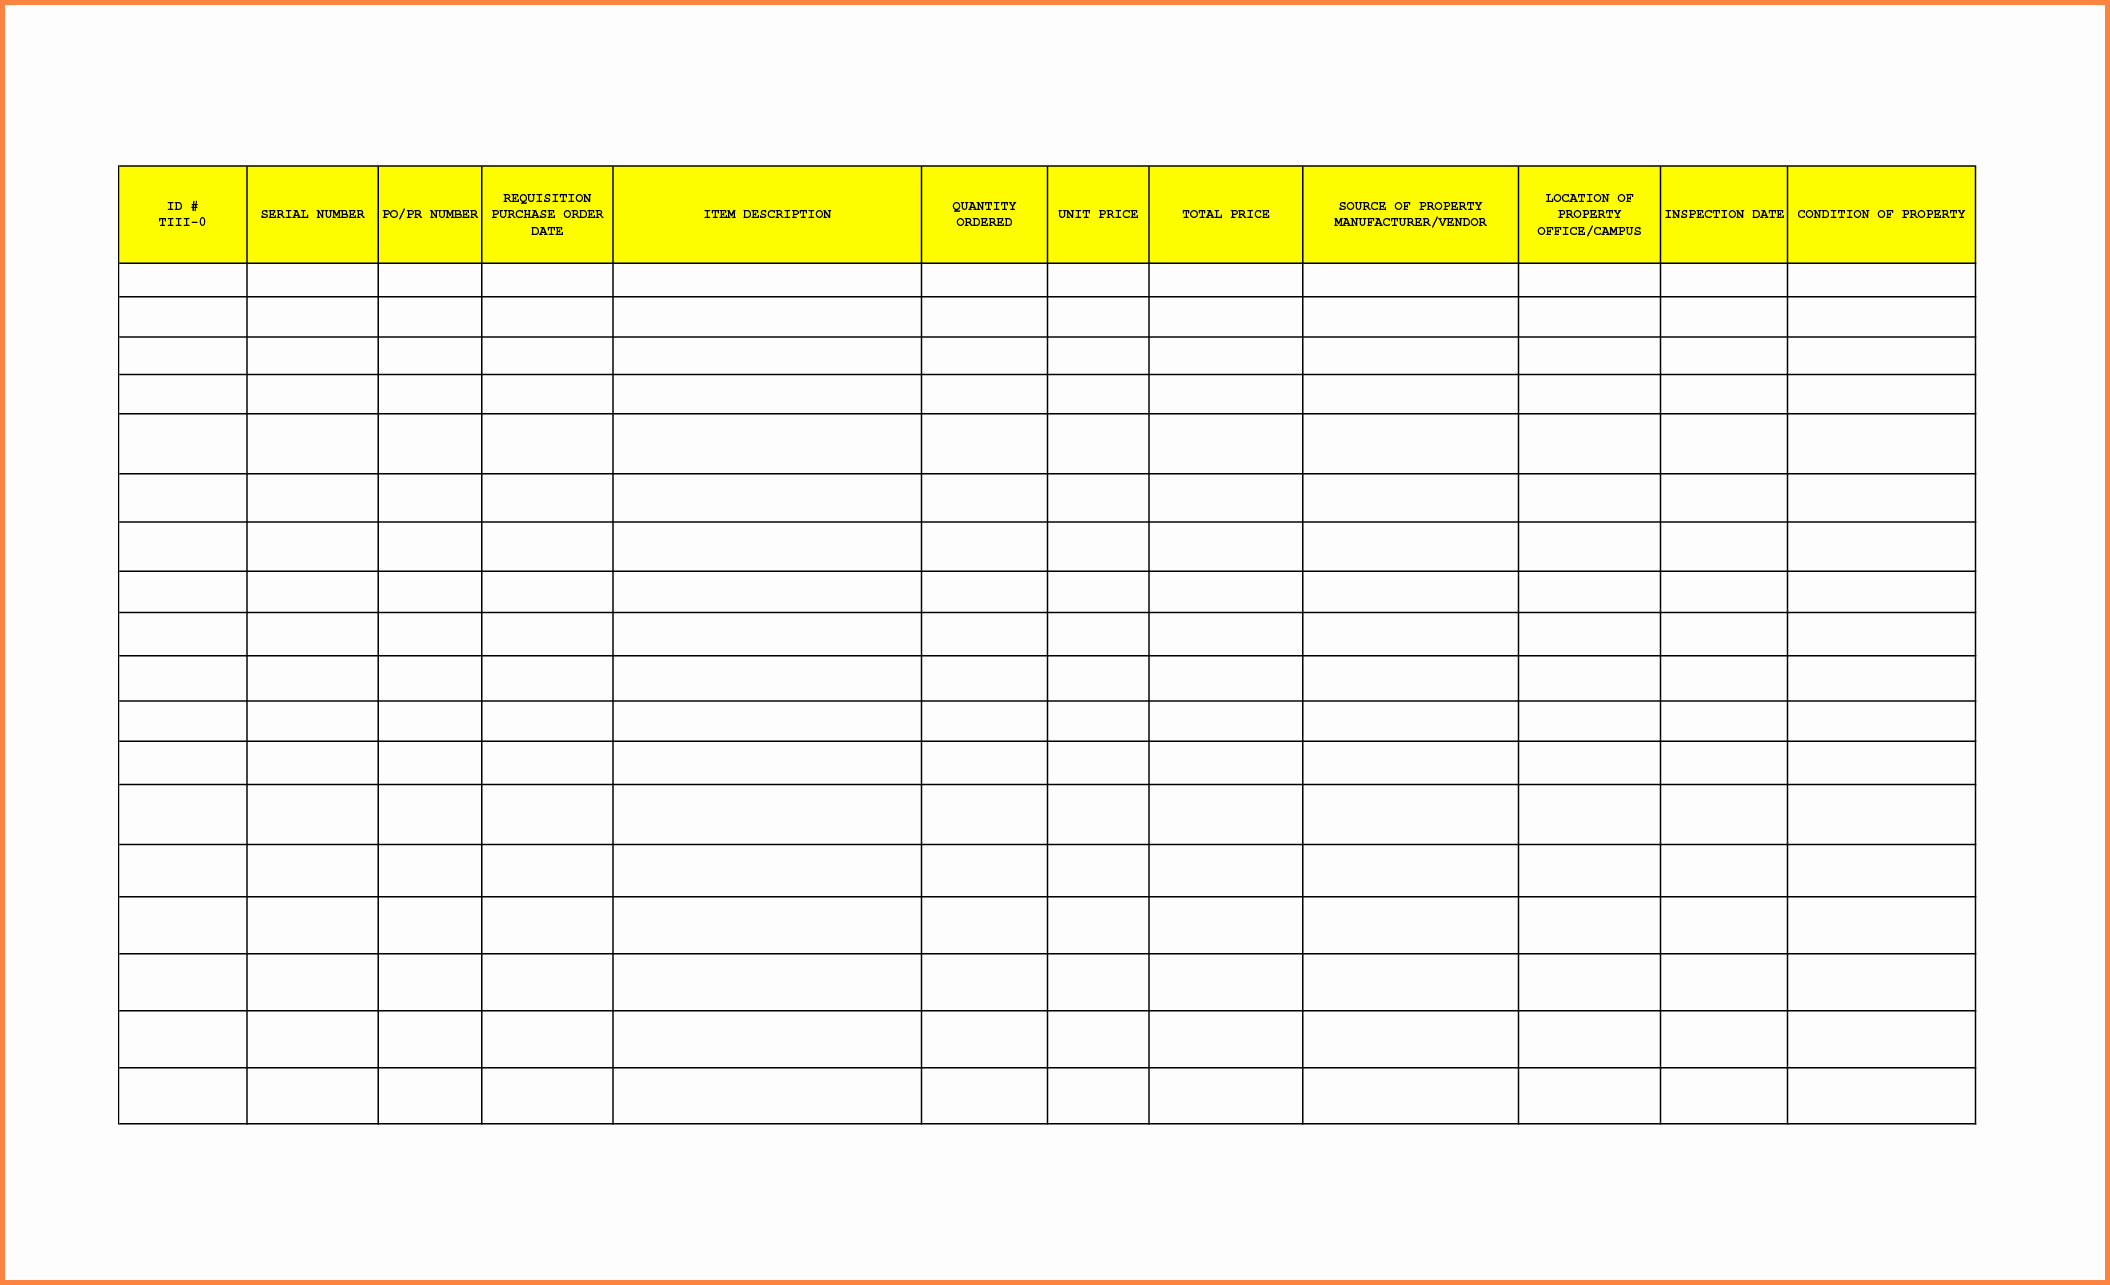 Office Supply Inventory Template Luxury 8 Office Supplies Inventory Spreadsheet